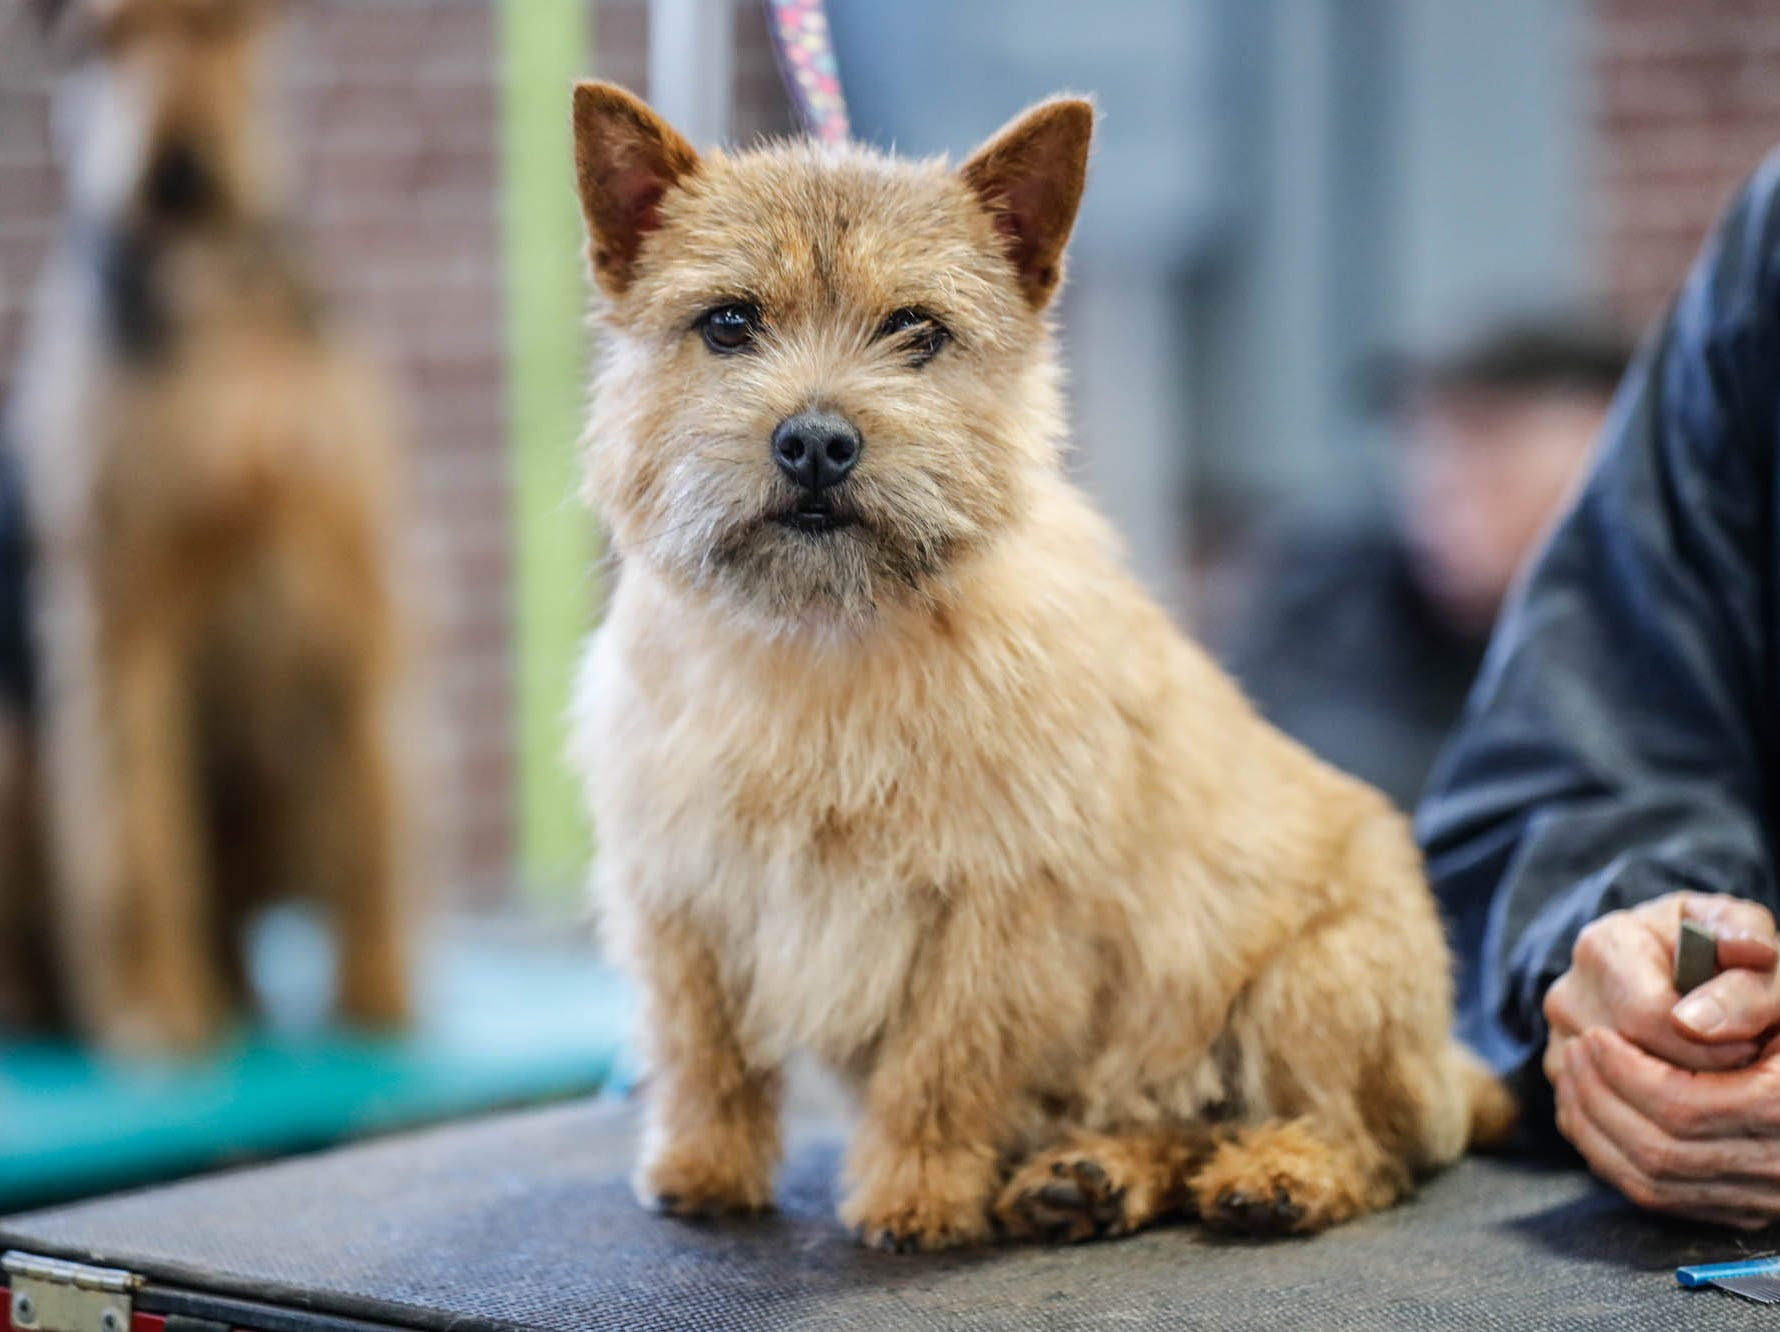 Baby, a Norwich Terrier the Indy Winter Classic All Breed Dog Show, held at the Indiana State Fairgrounds on Sunday, Feb. 10, 2019.